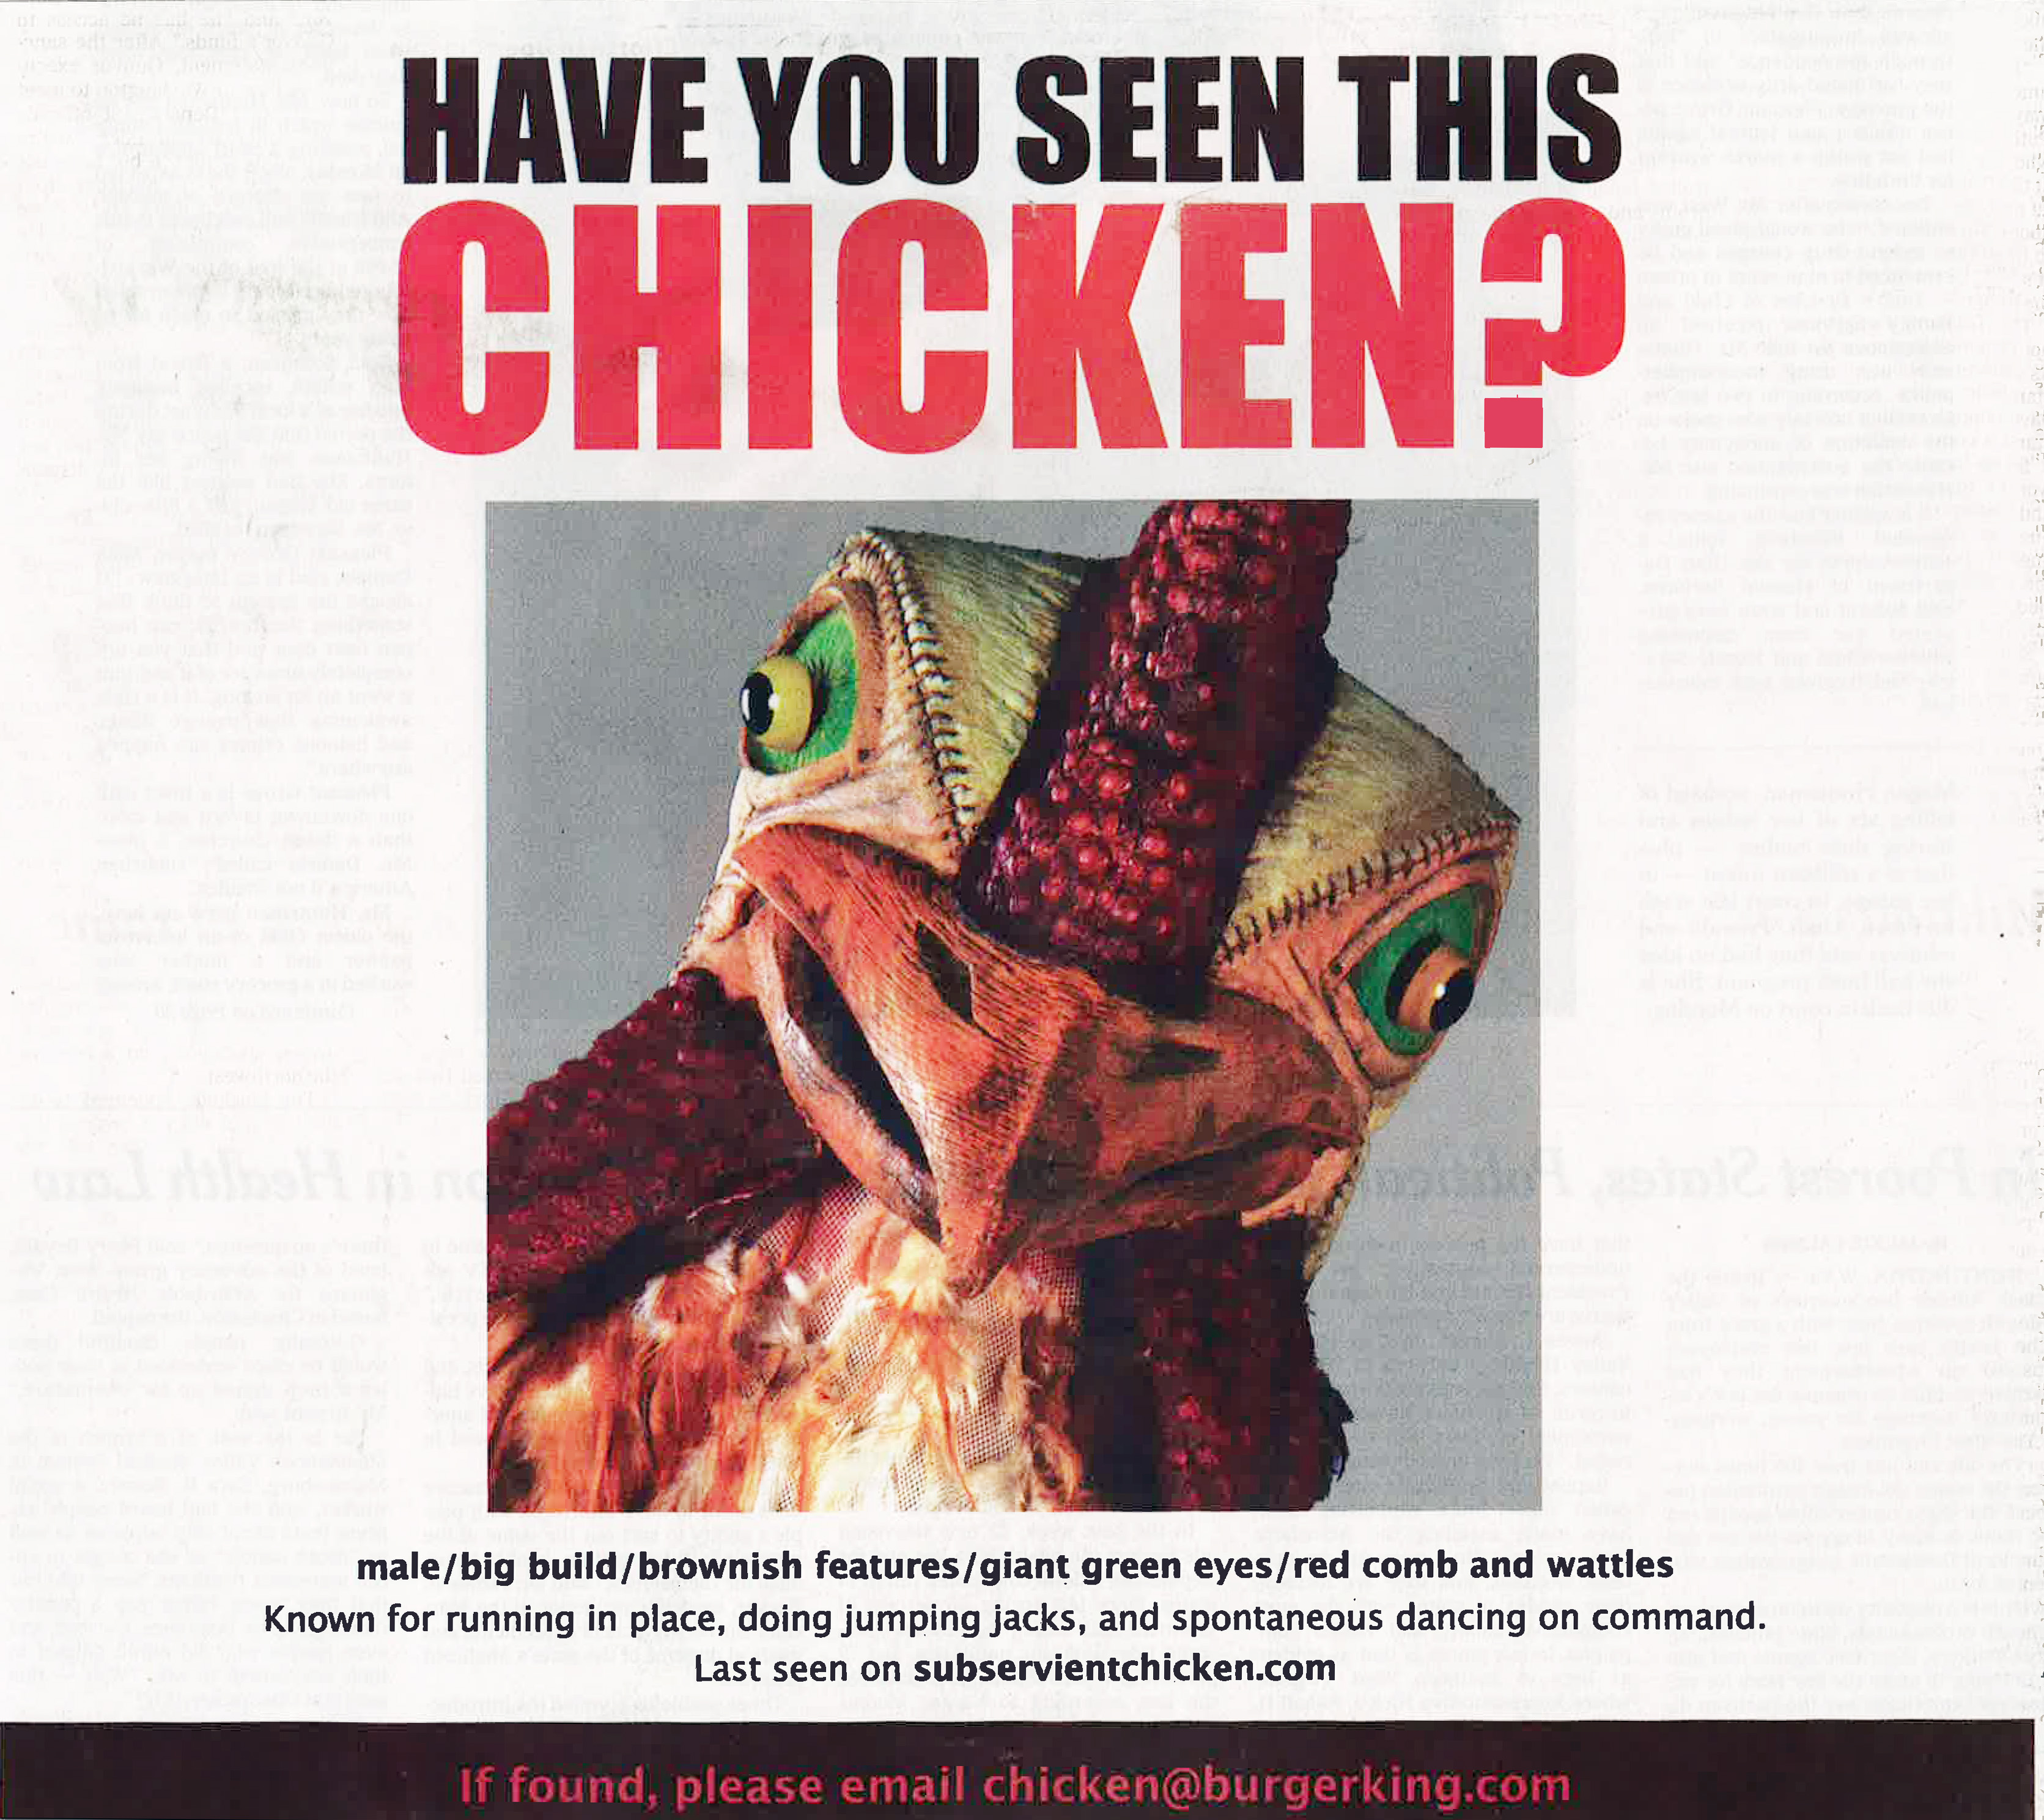 This Burger King advertisement appeared in the New York Times Apr. 27, 2014